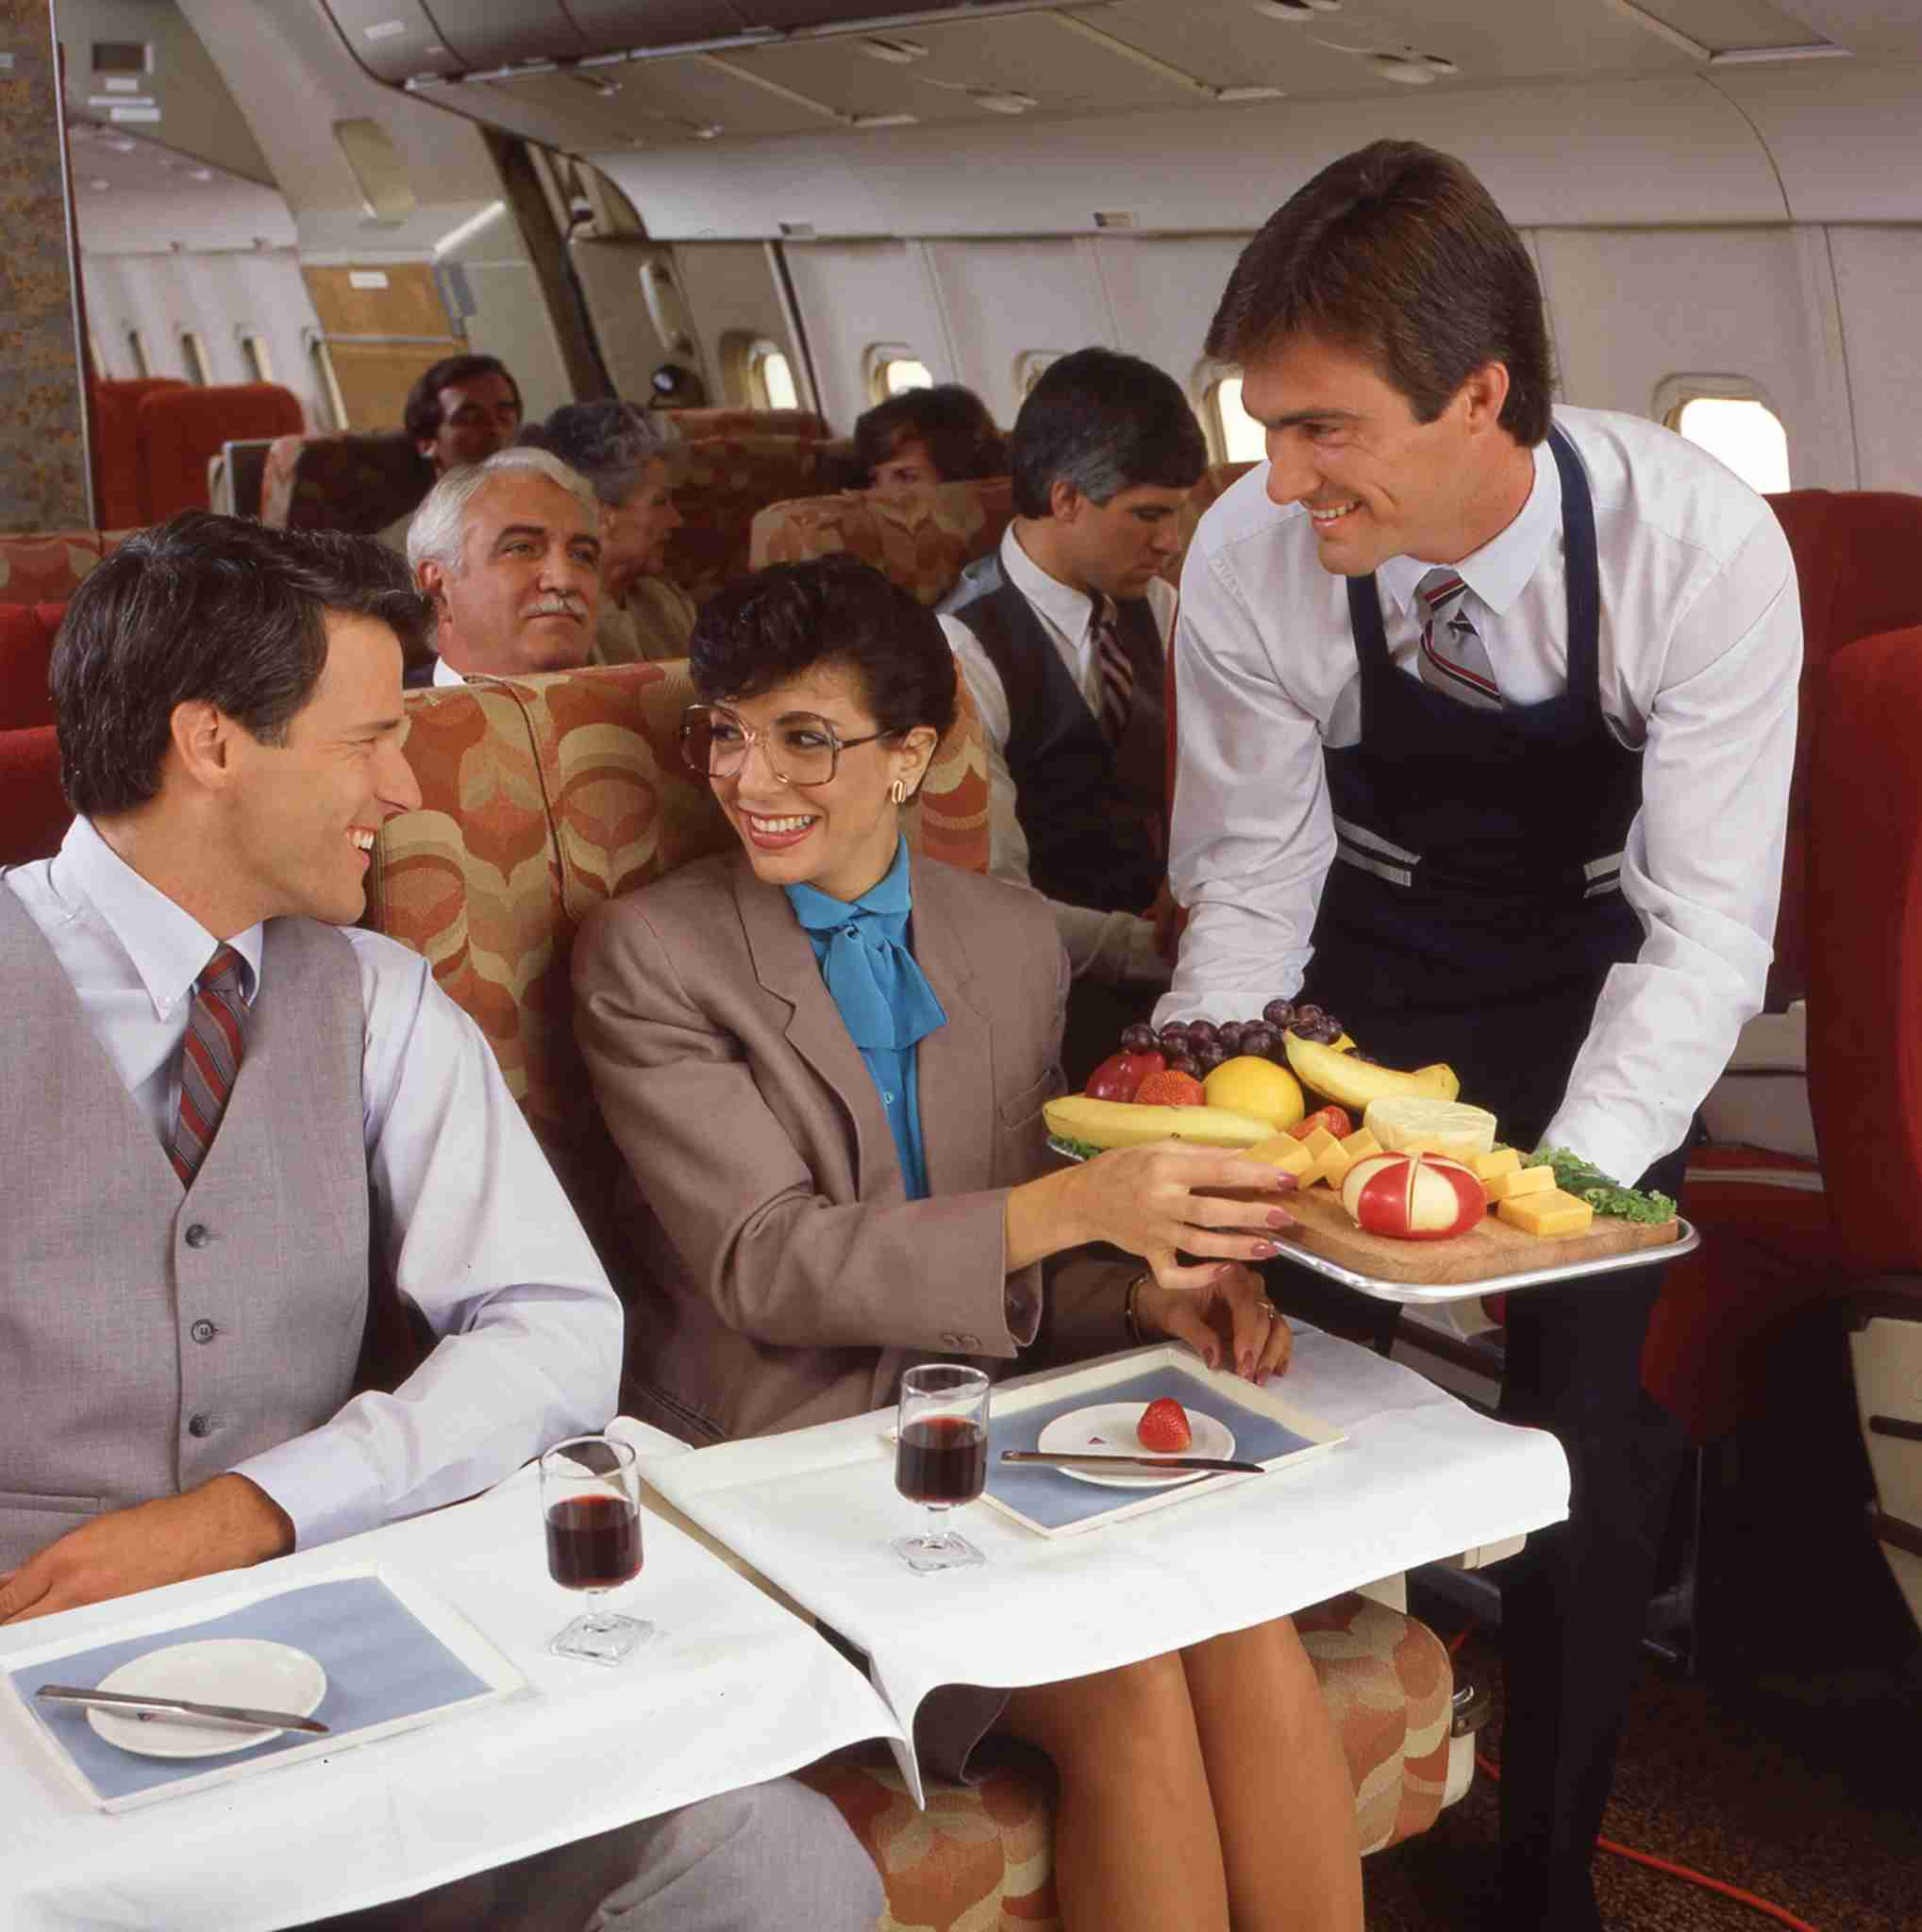 Delta Medallion Service, as advertised on the airline